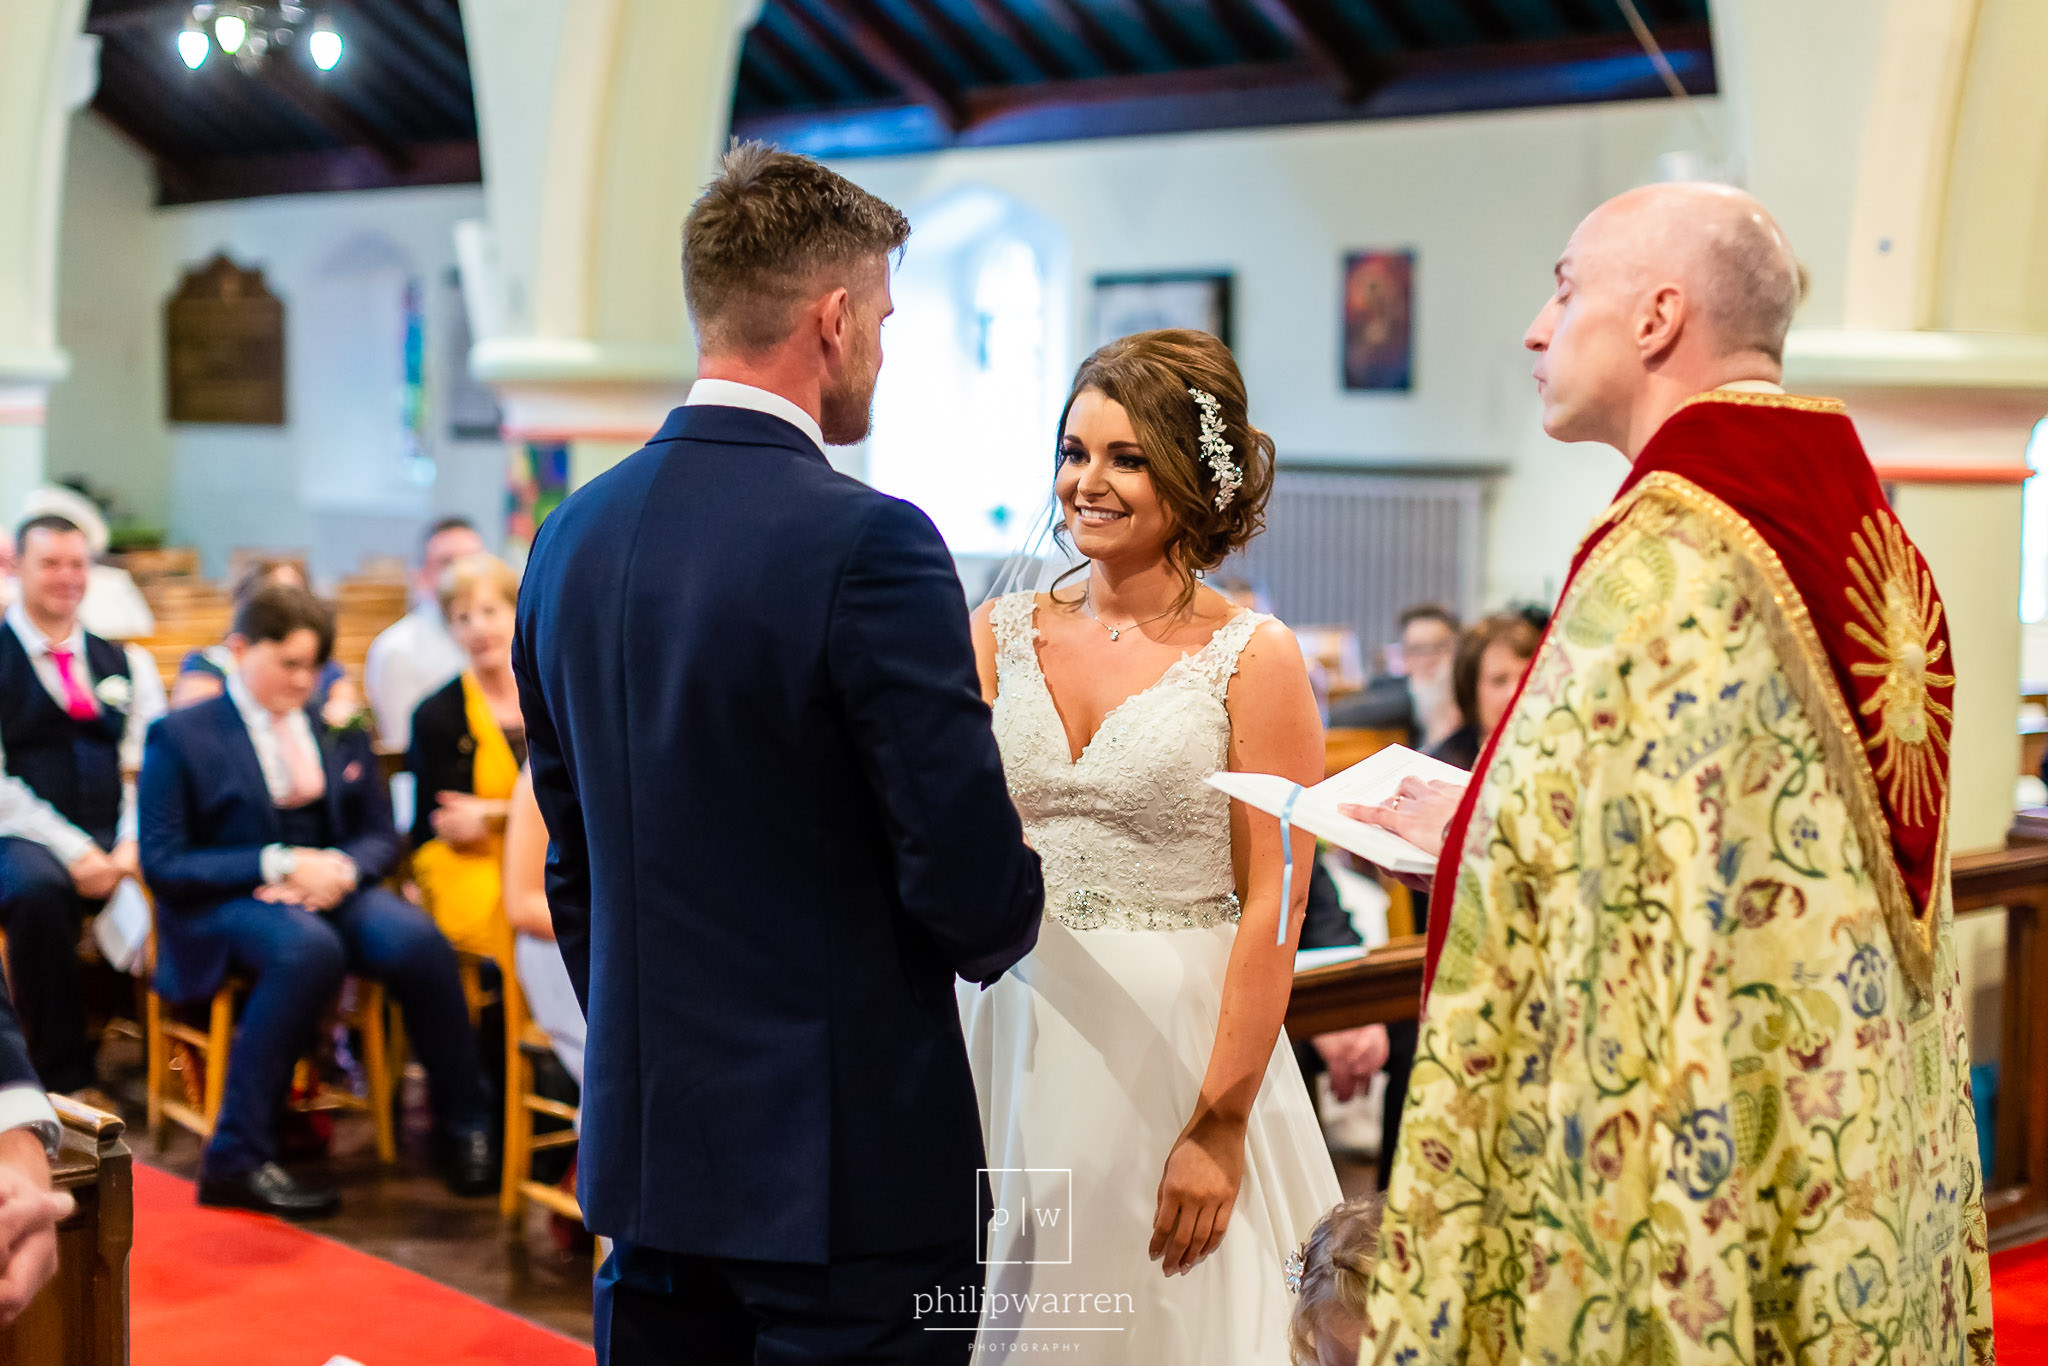 bride and groom during wedding ceremony at st fagans church